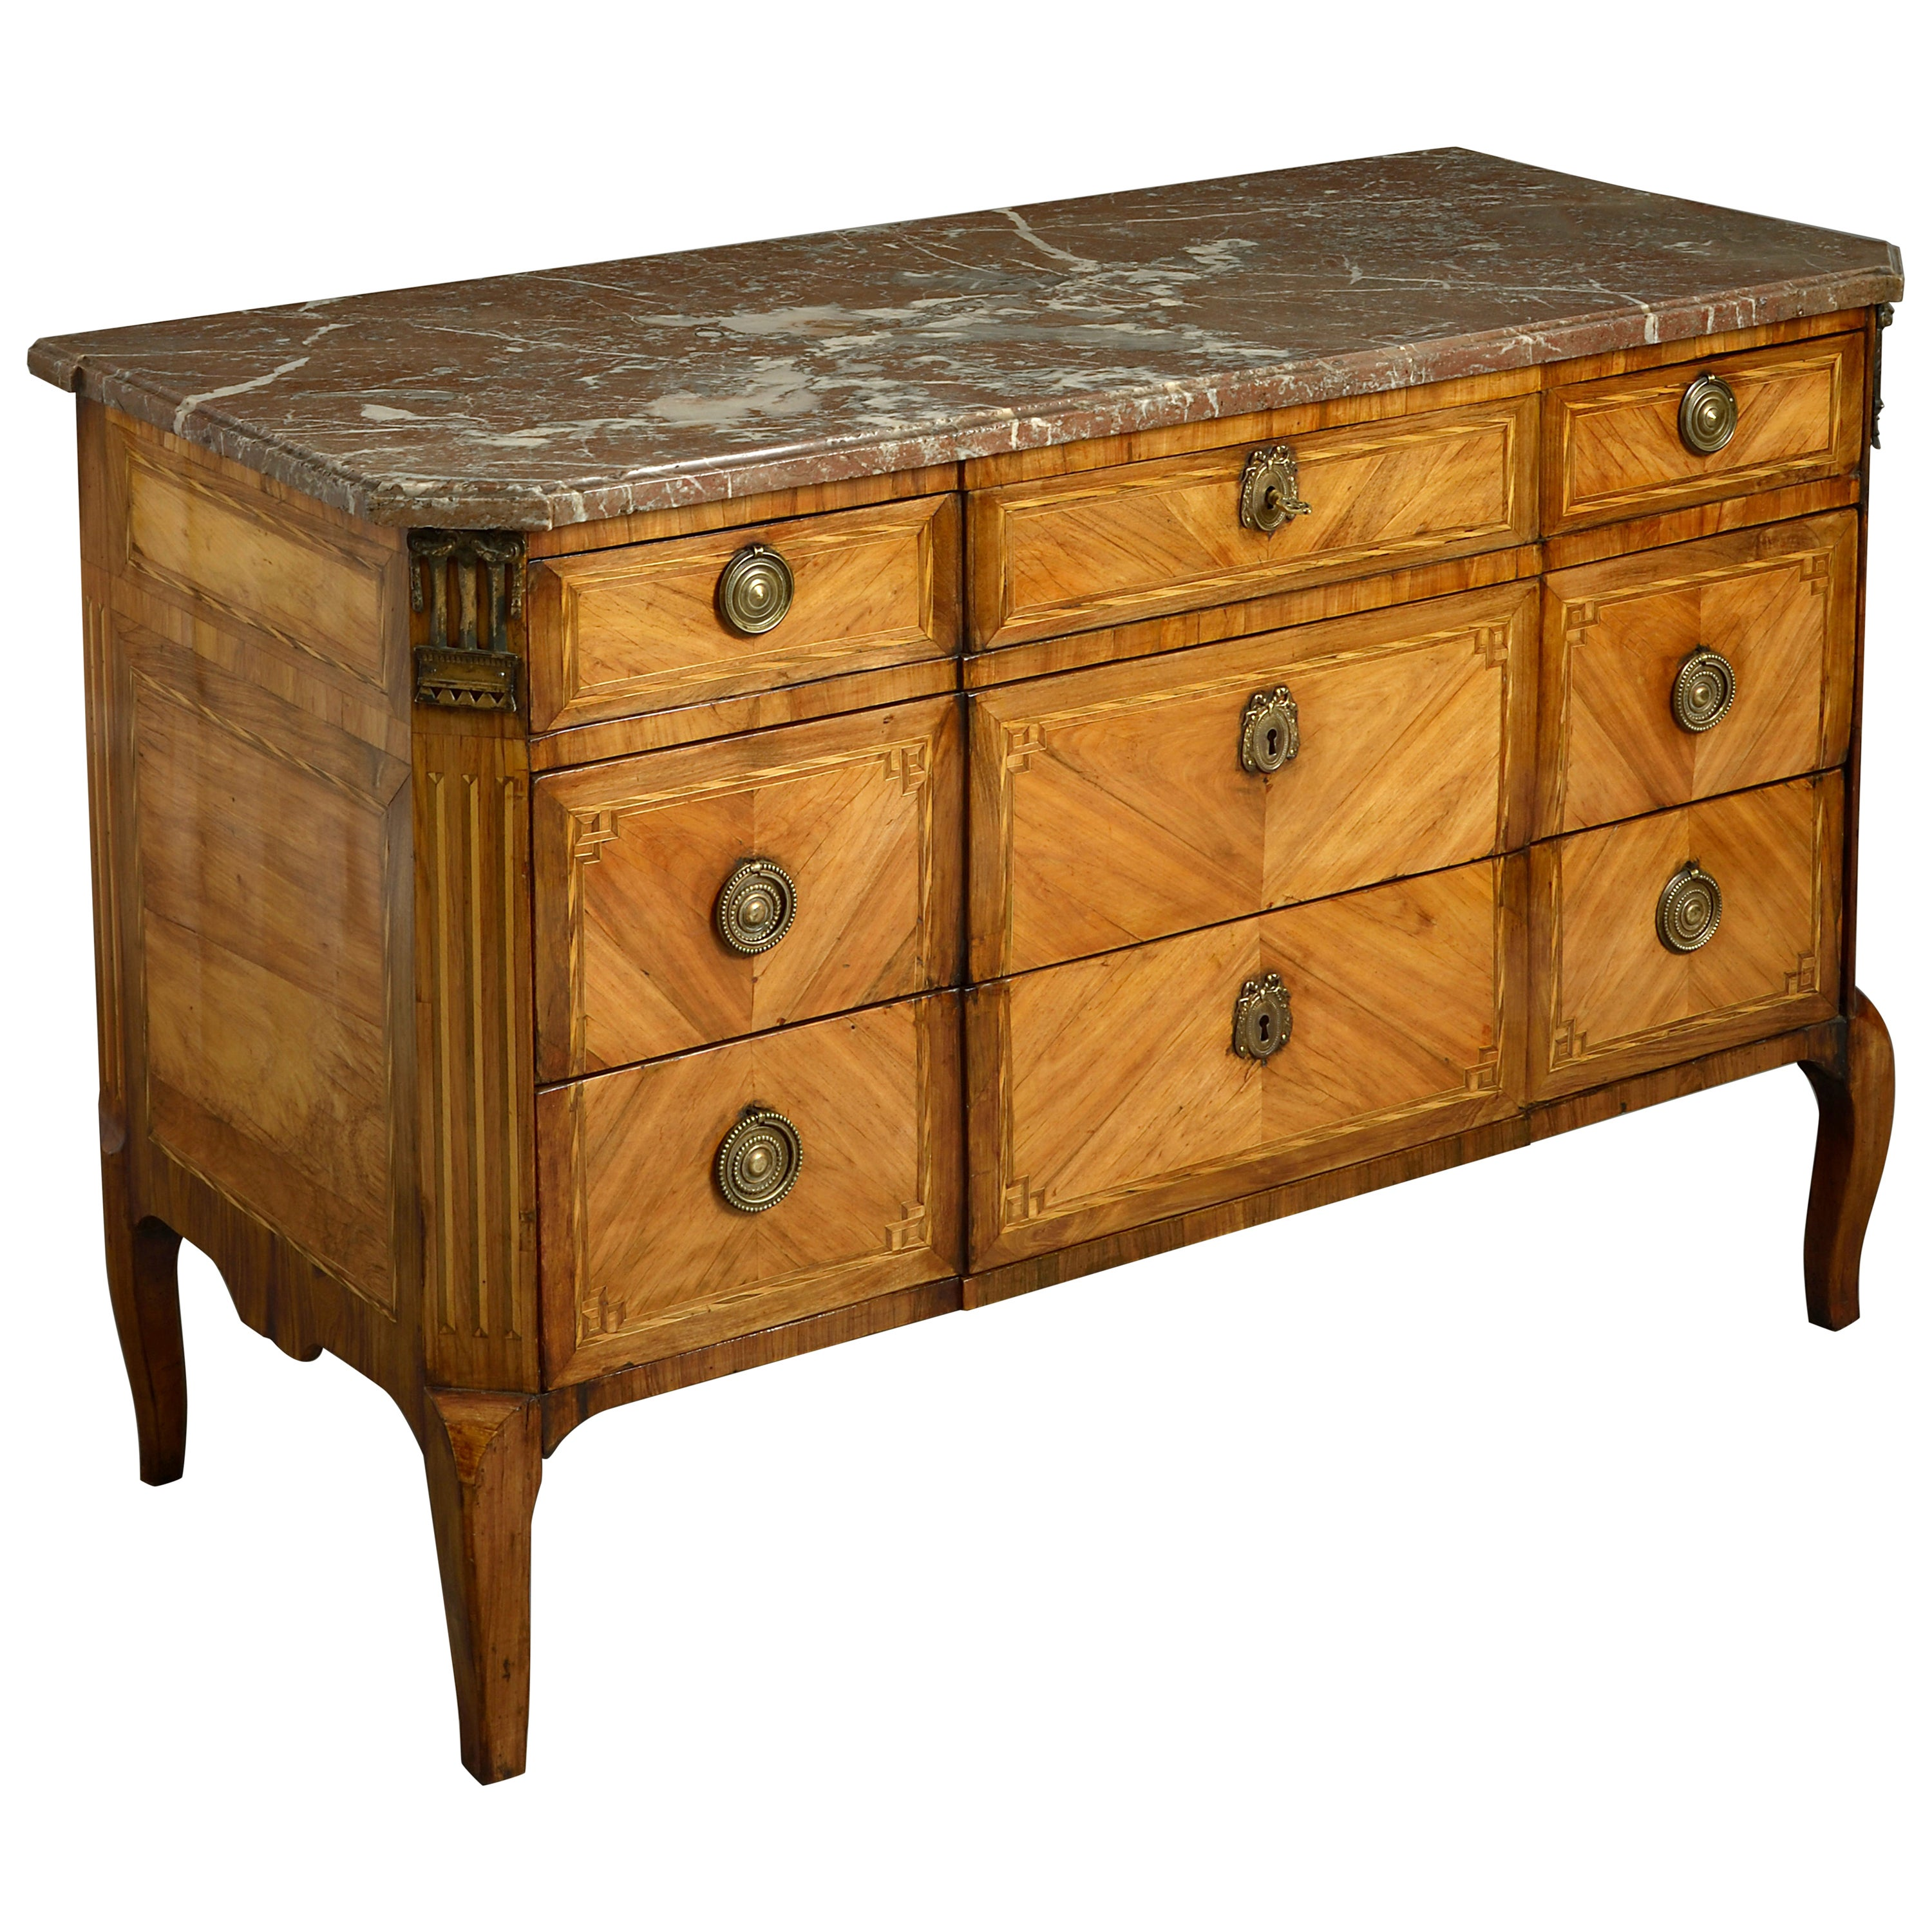 18th Century Louis XVI Transitional Parquetry Commode